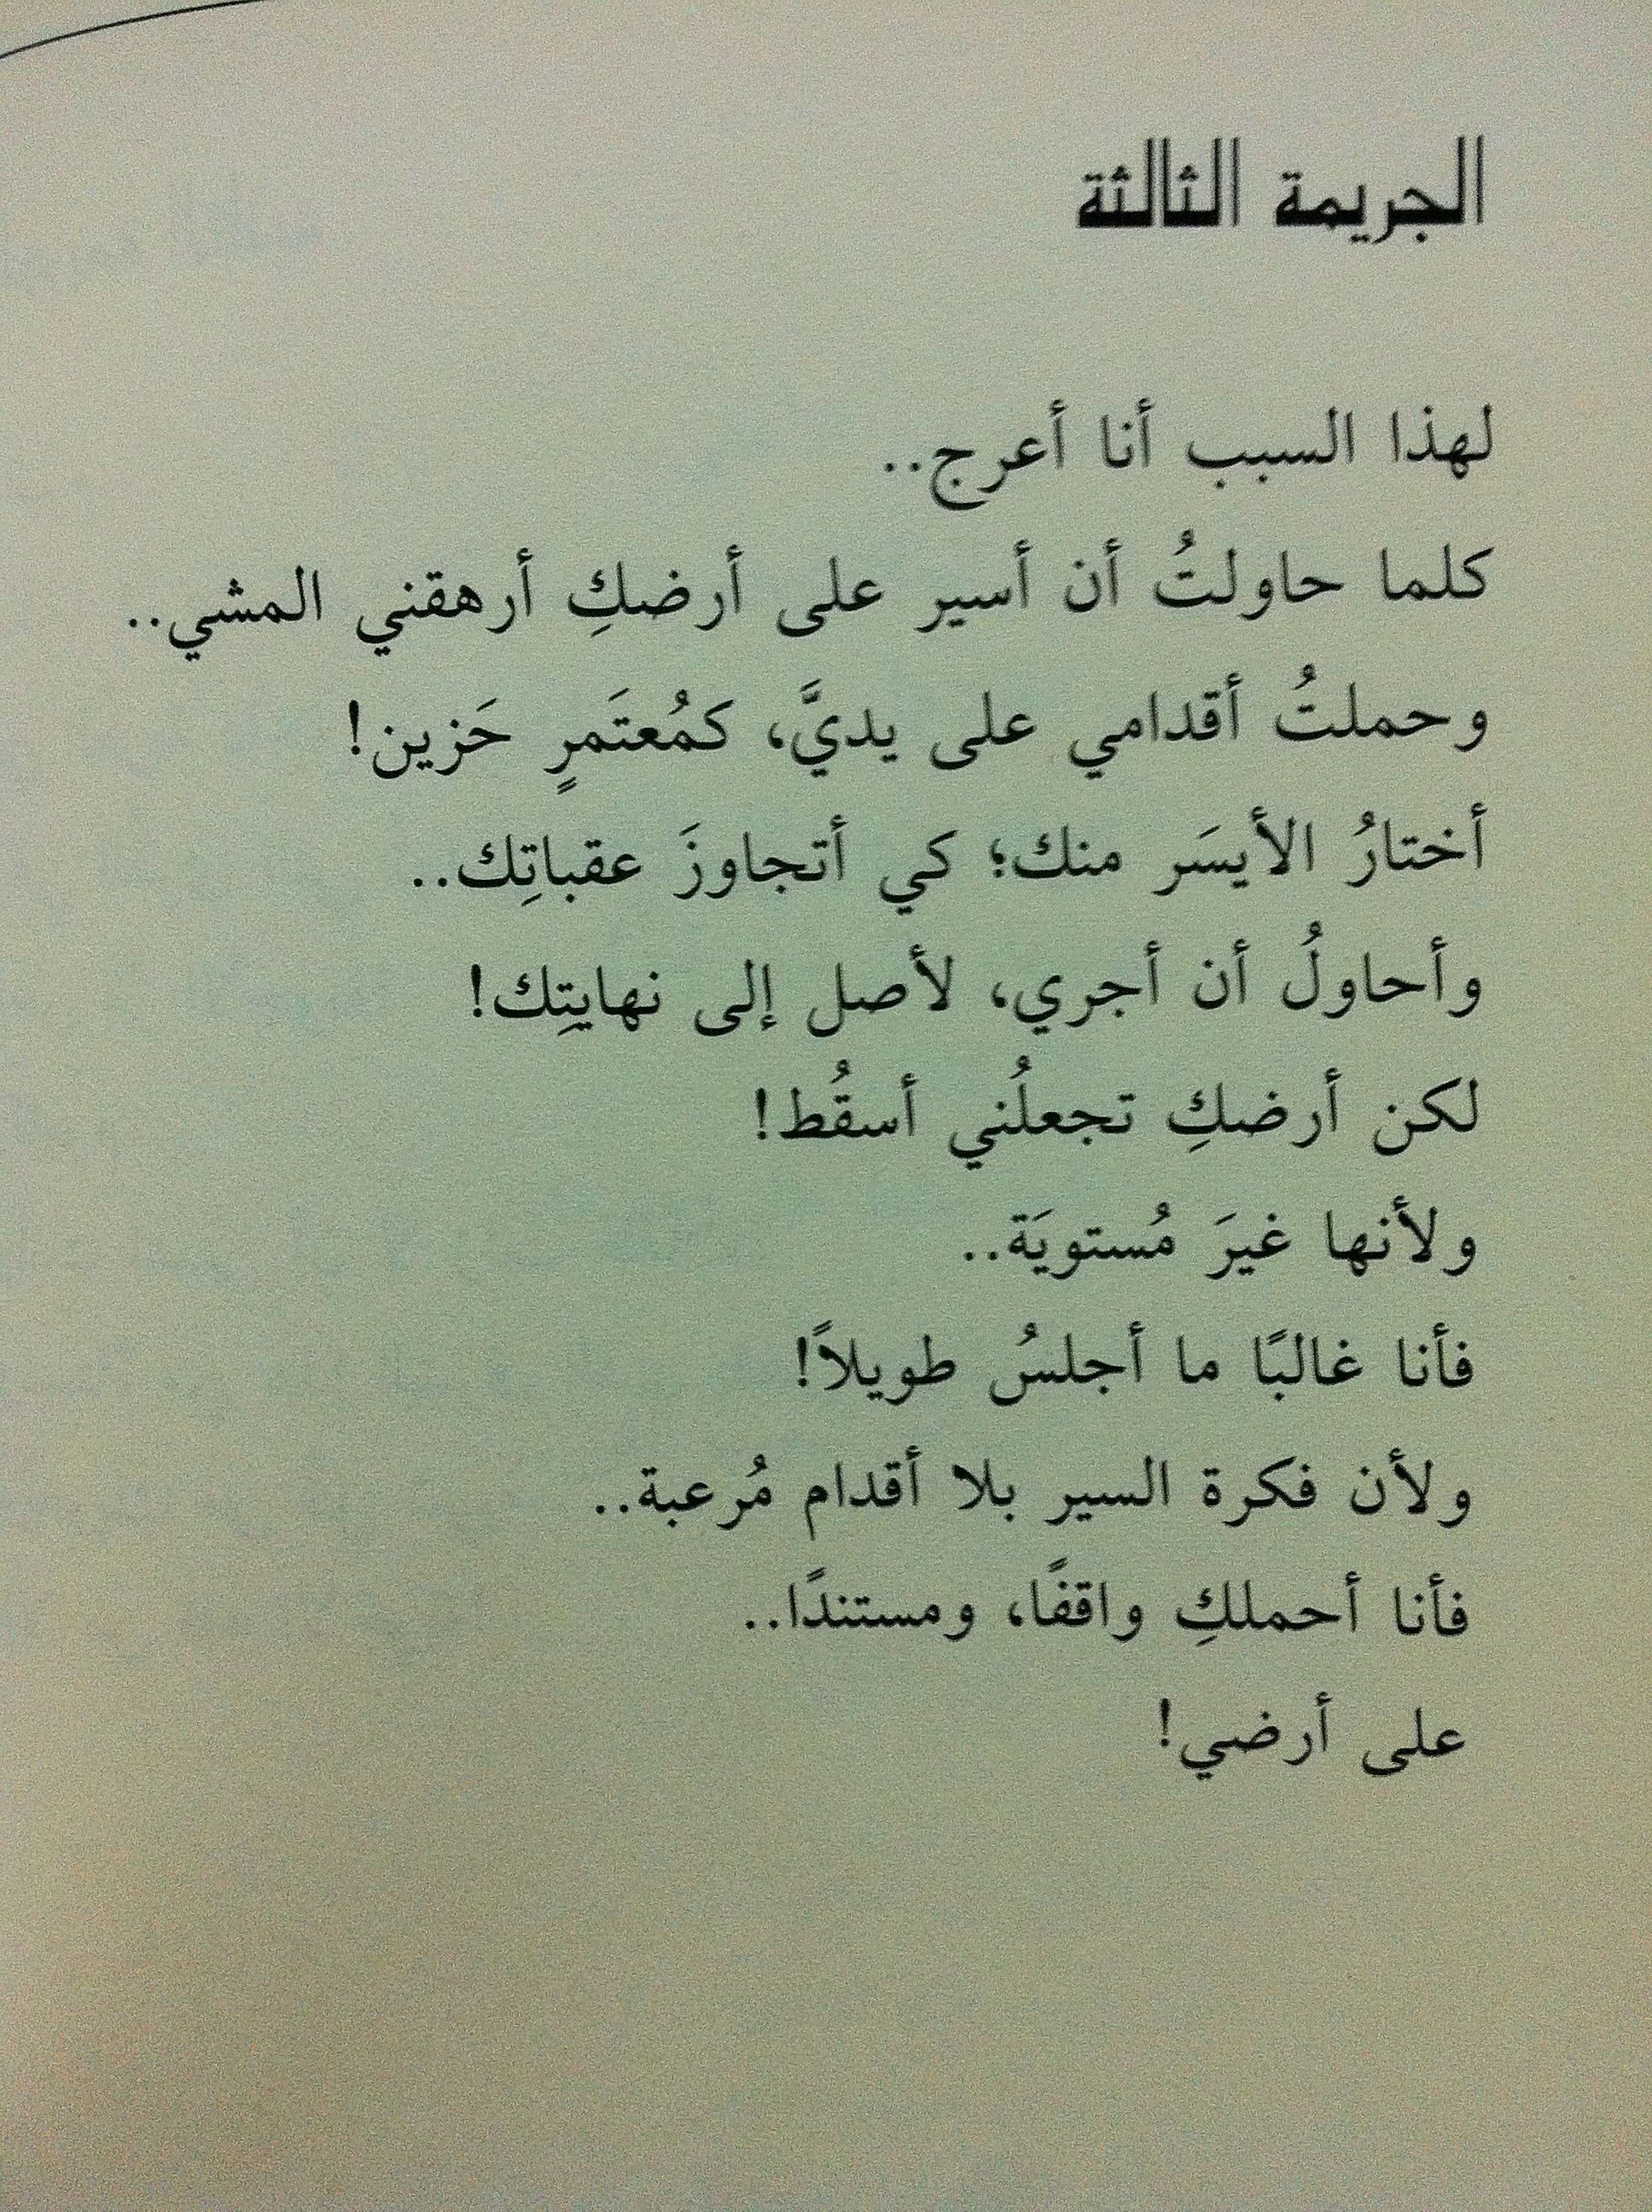 Pin By Nourah Abdullah On مرآة تبحث عن وجه رشاد حسن Quotes Words Book Worth Reading